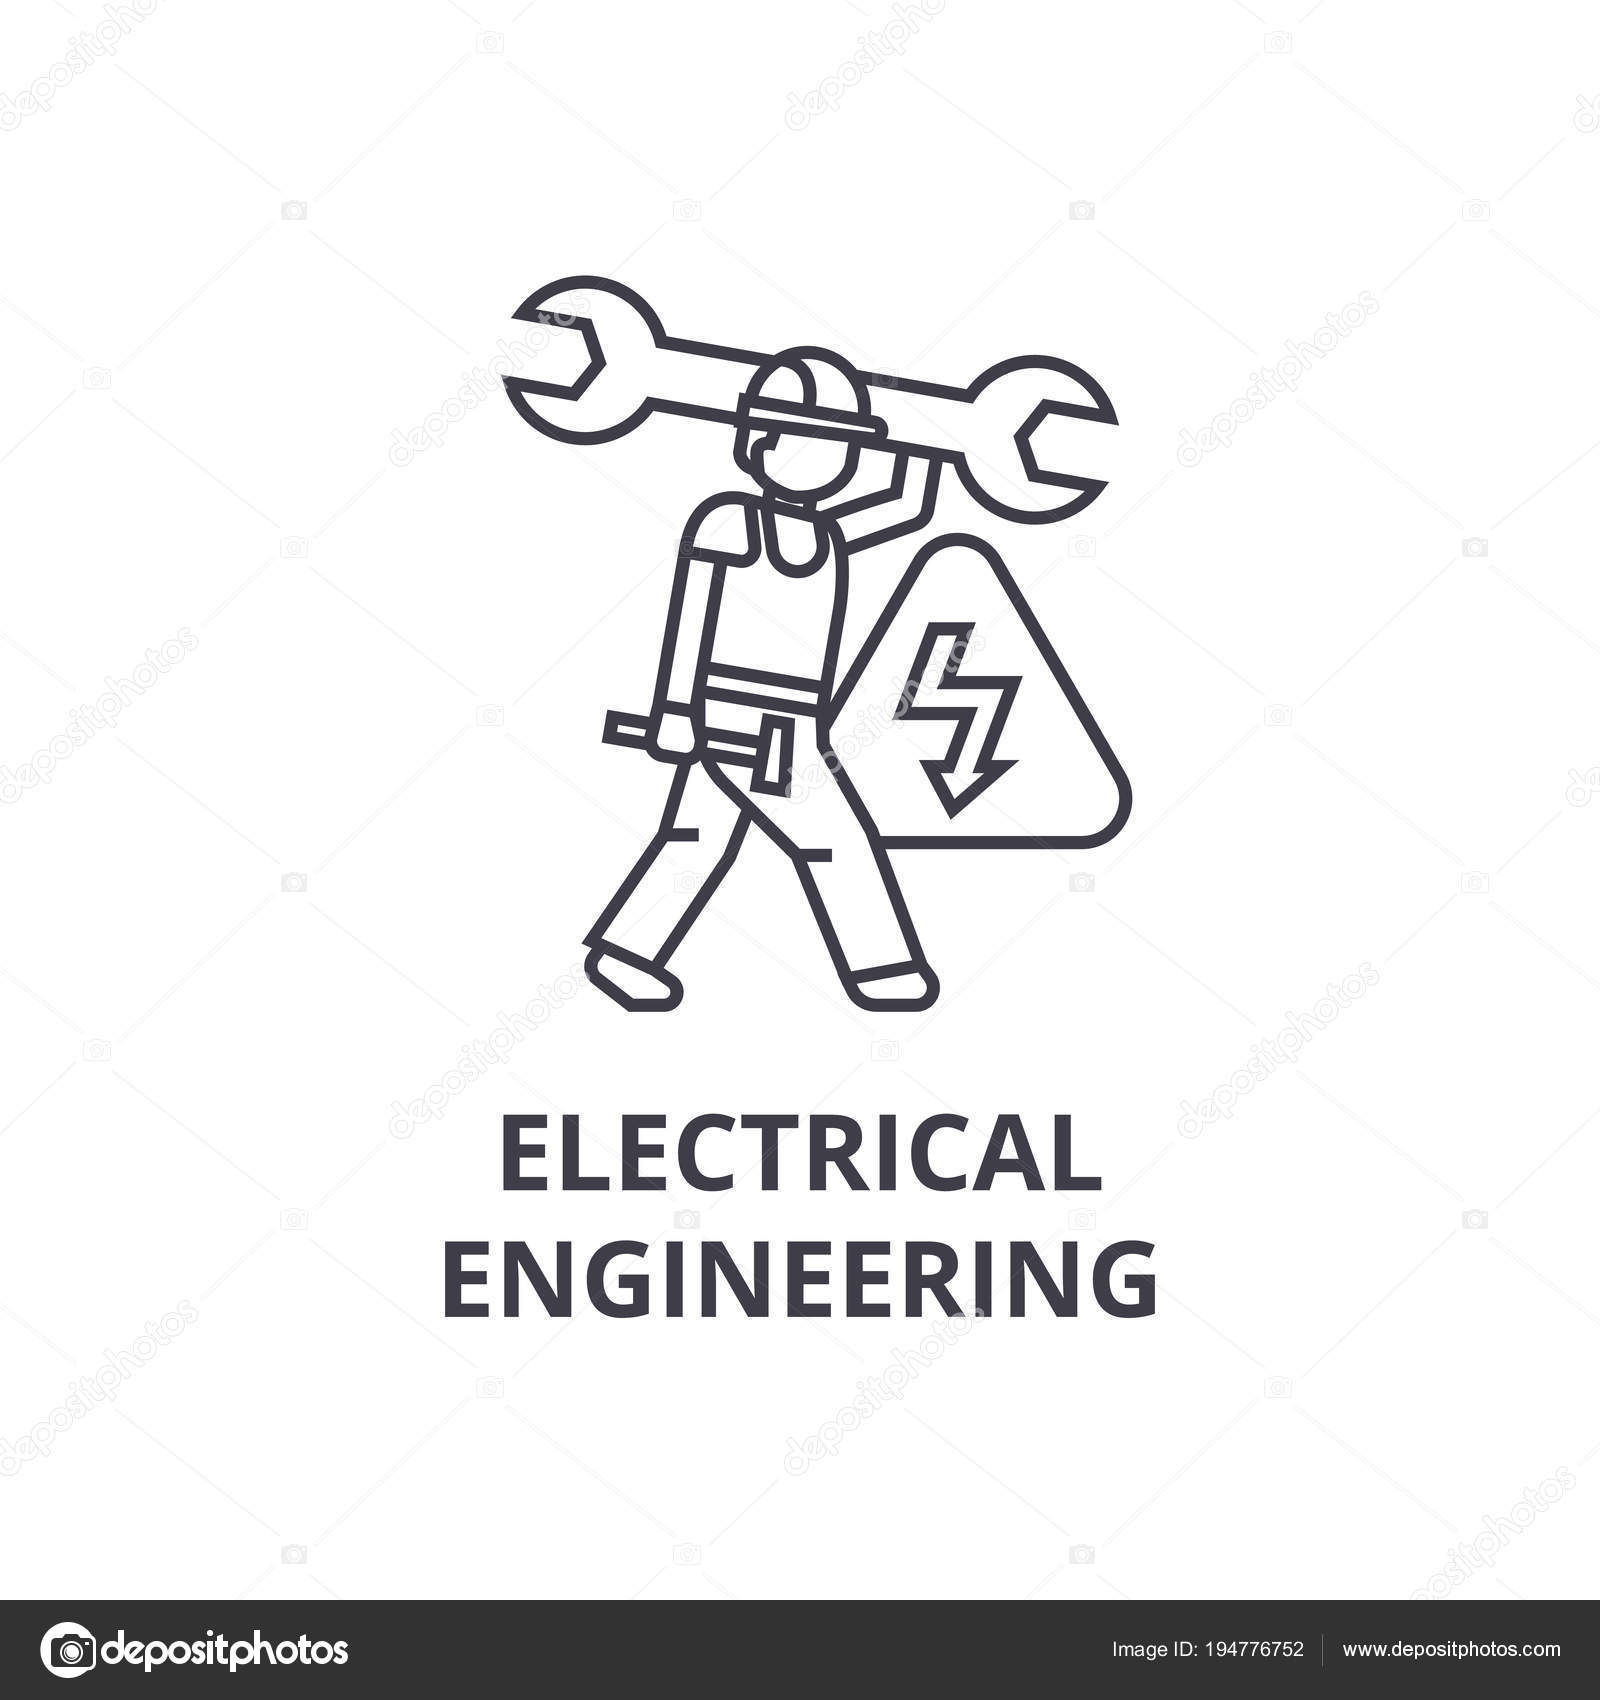 Electrical Engineering Vector Line Icon Sign Illustration On